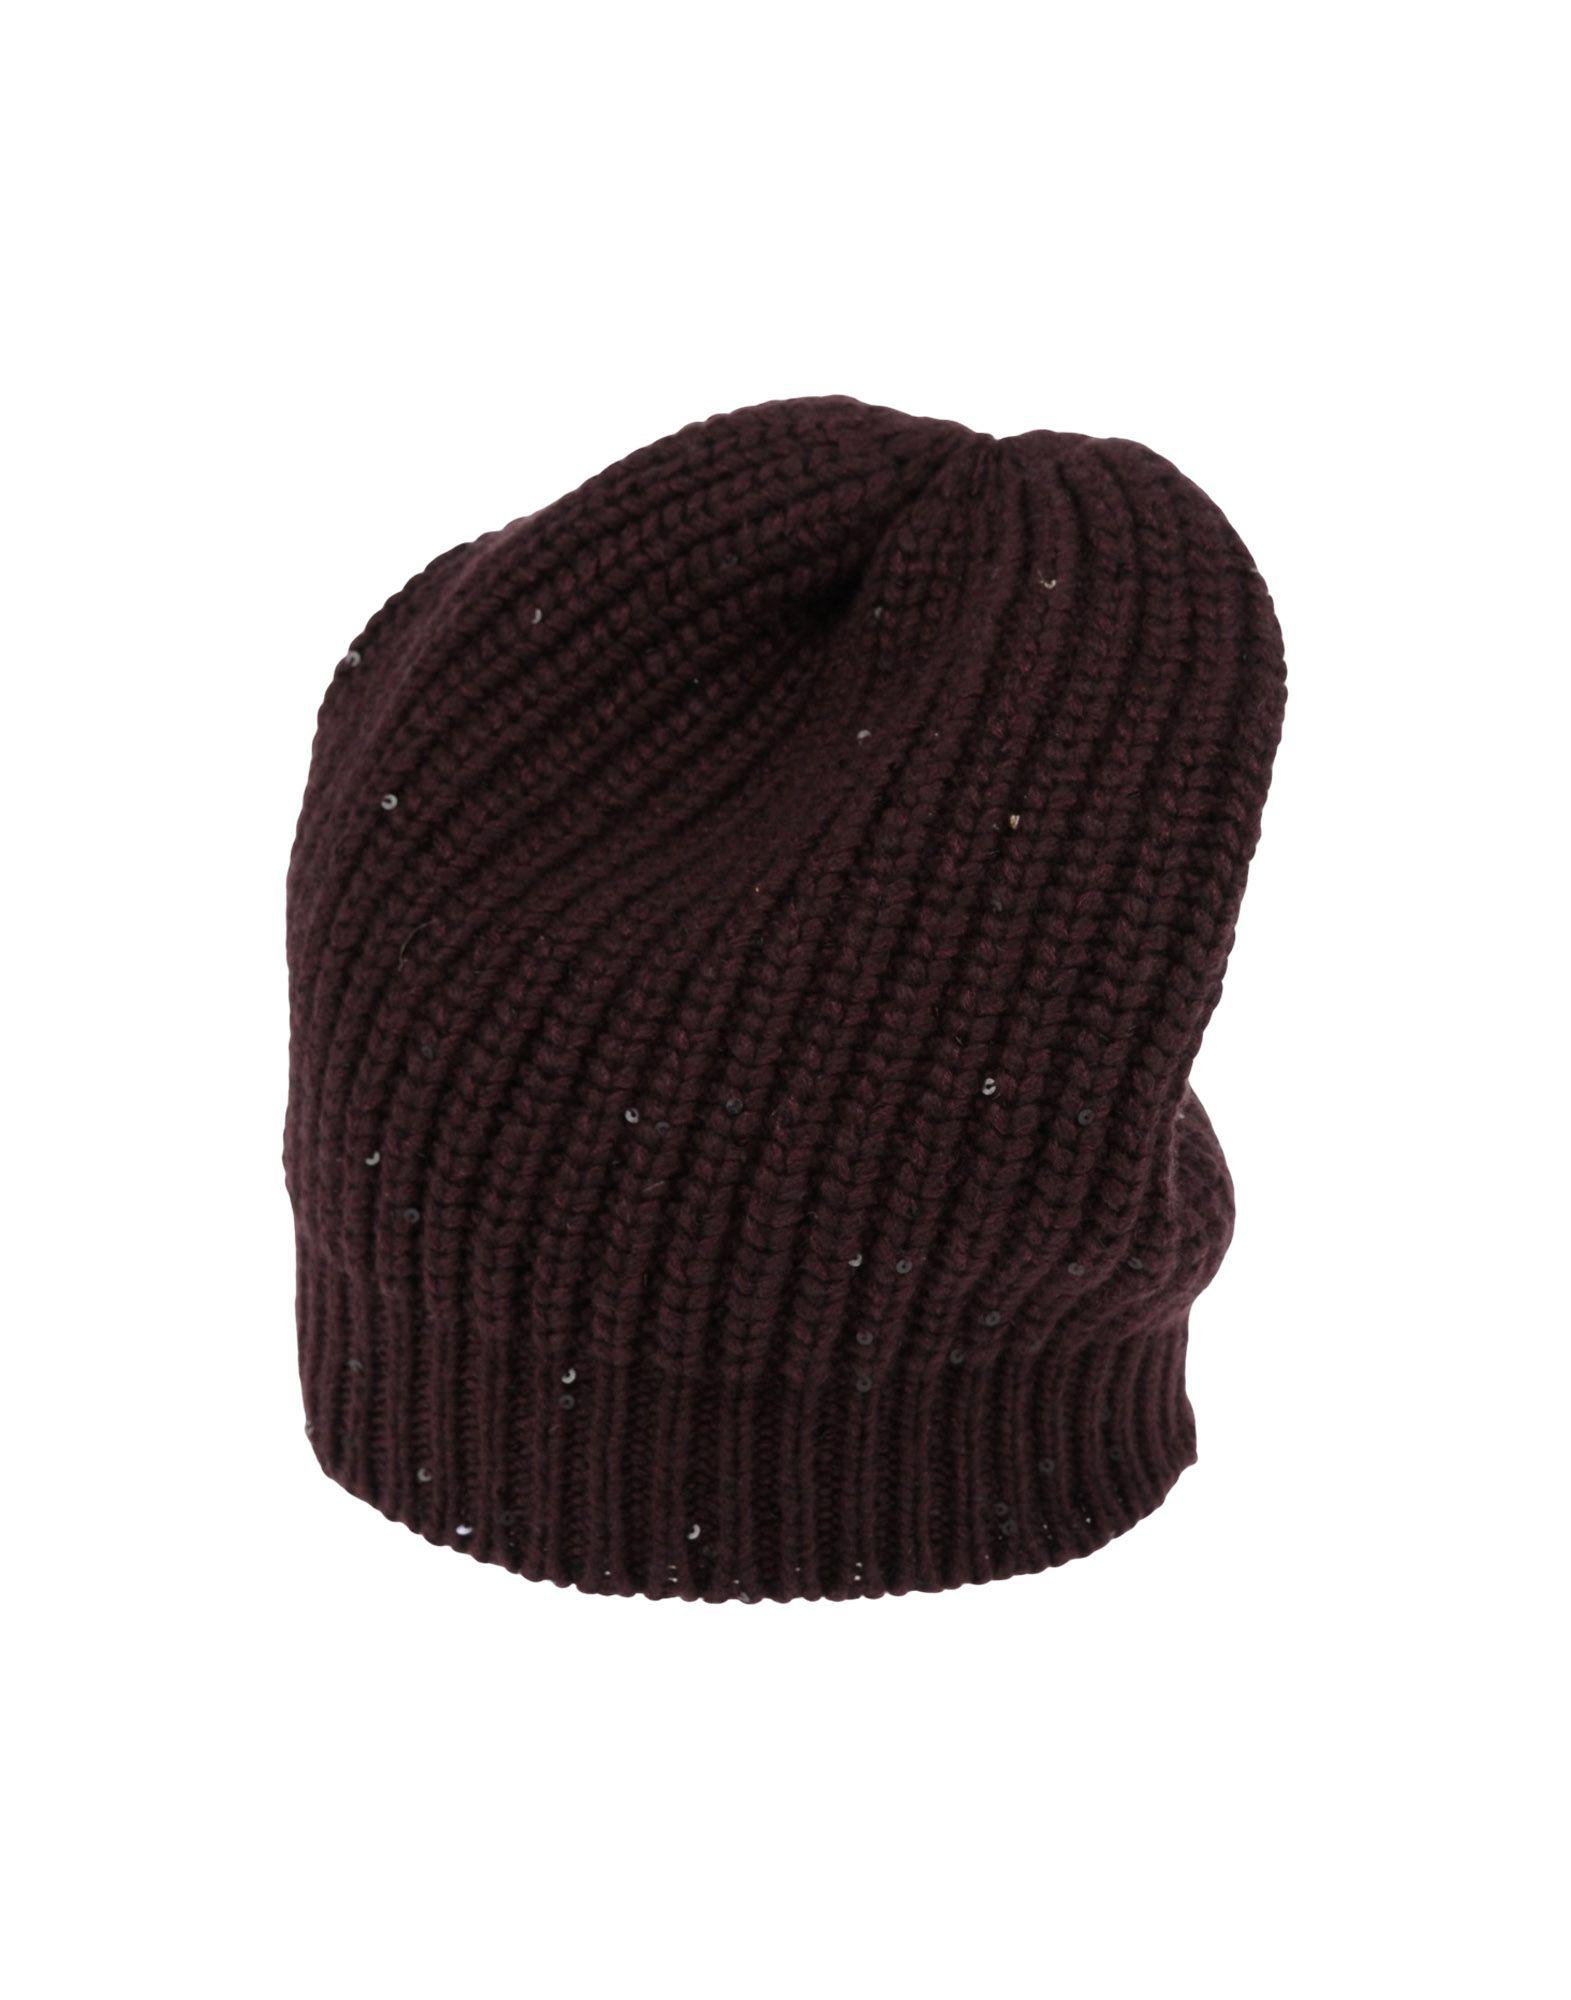 722f07ee84a Brunello Cucinelli Hat In Maroon